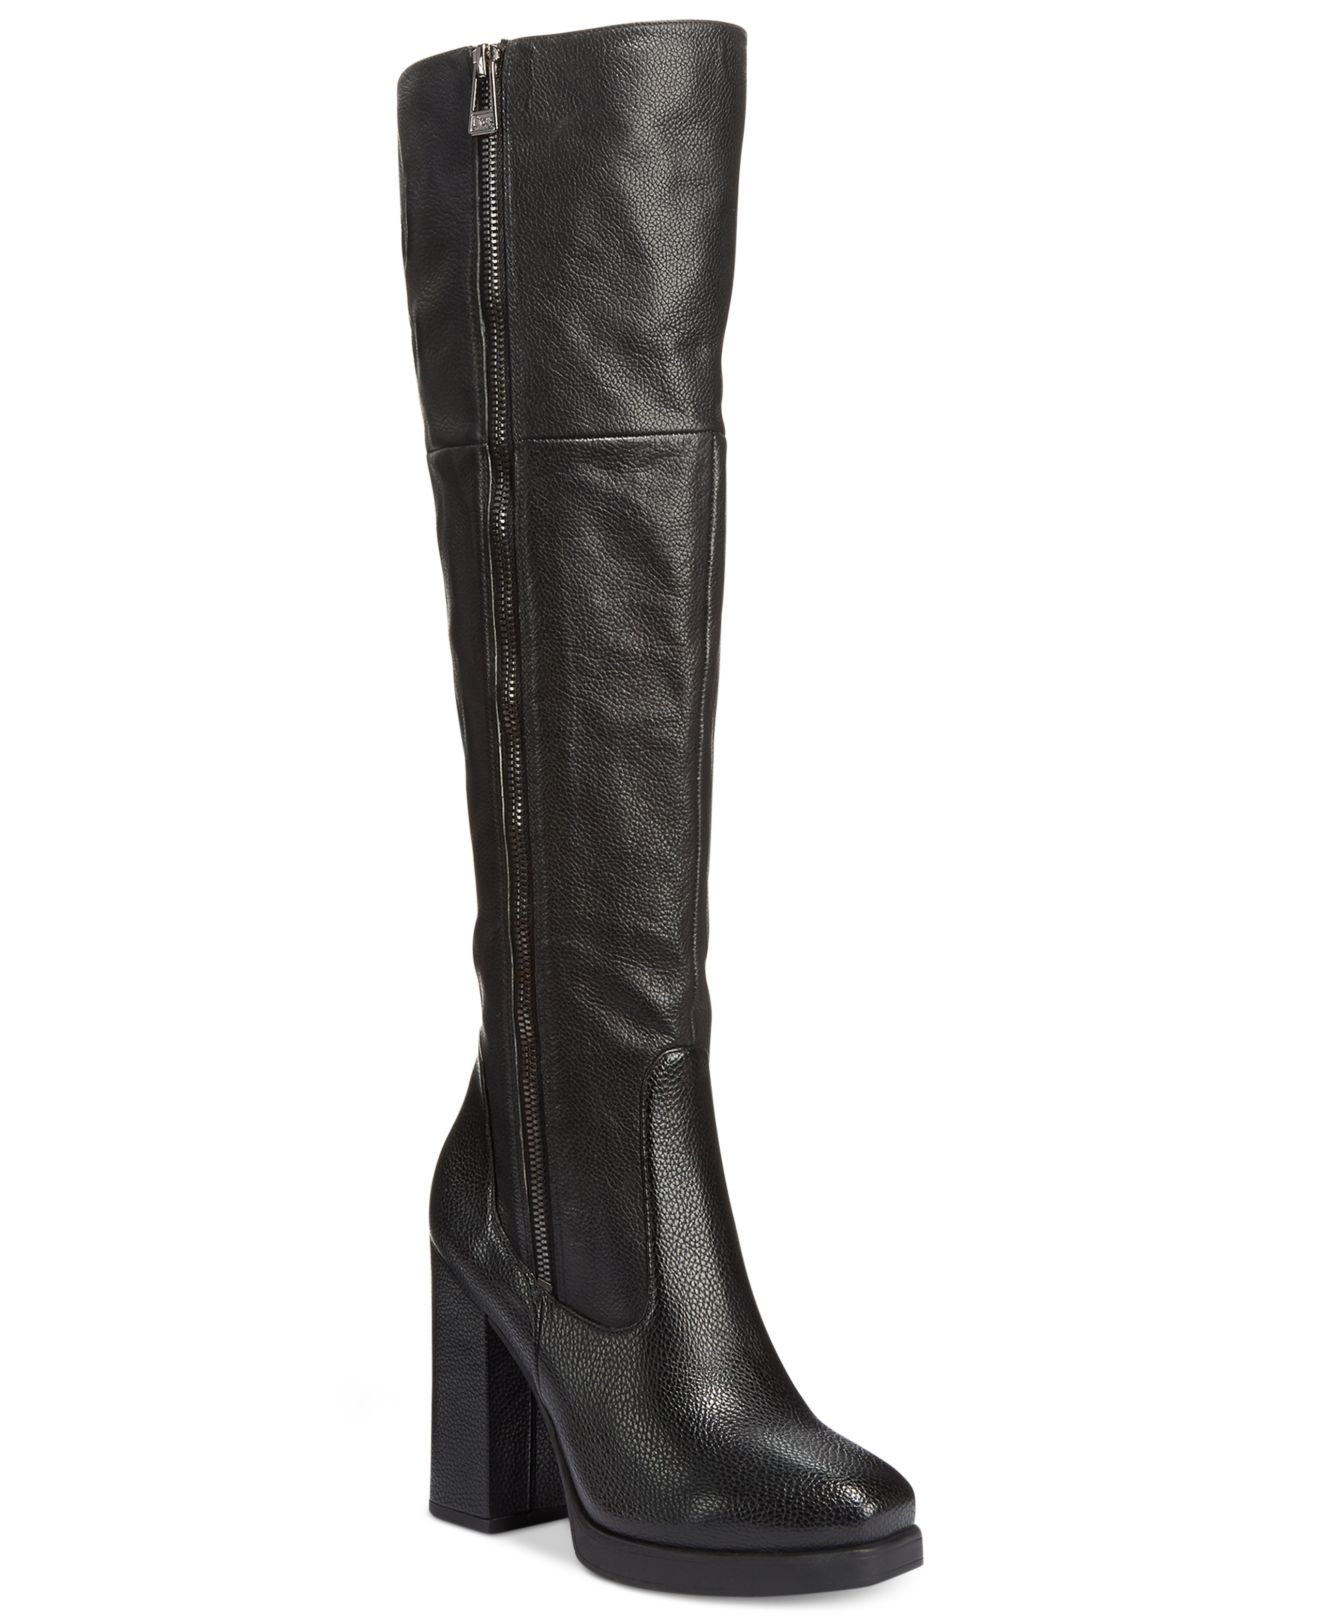 circus by sam edelman hollands knee high dress boots in black